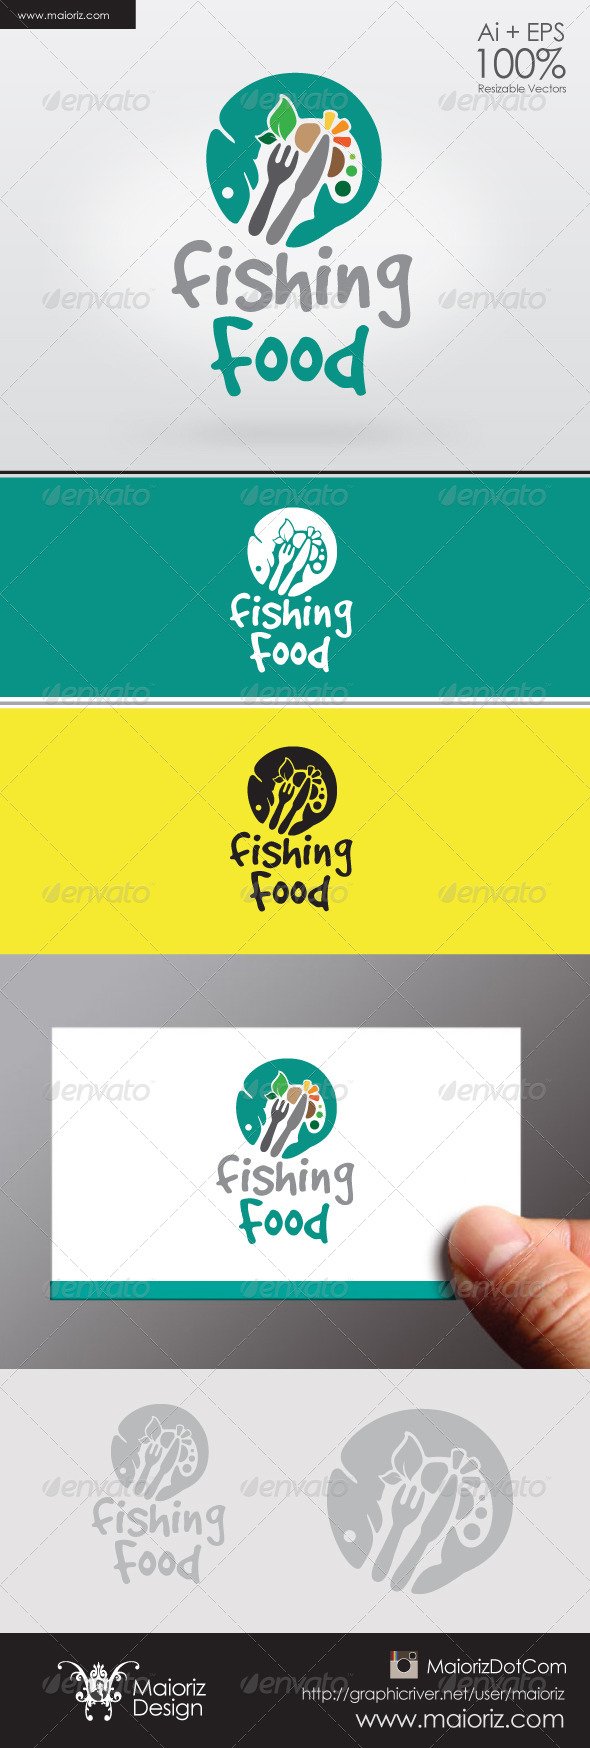 Fishing Food Logo